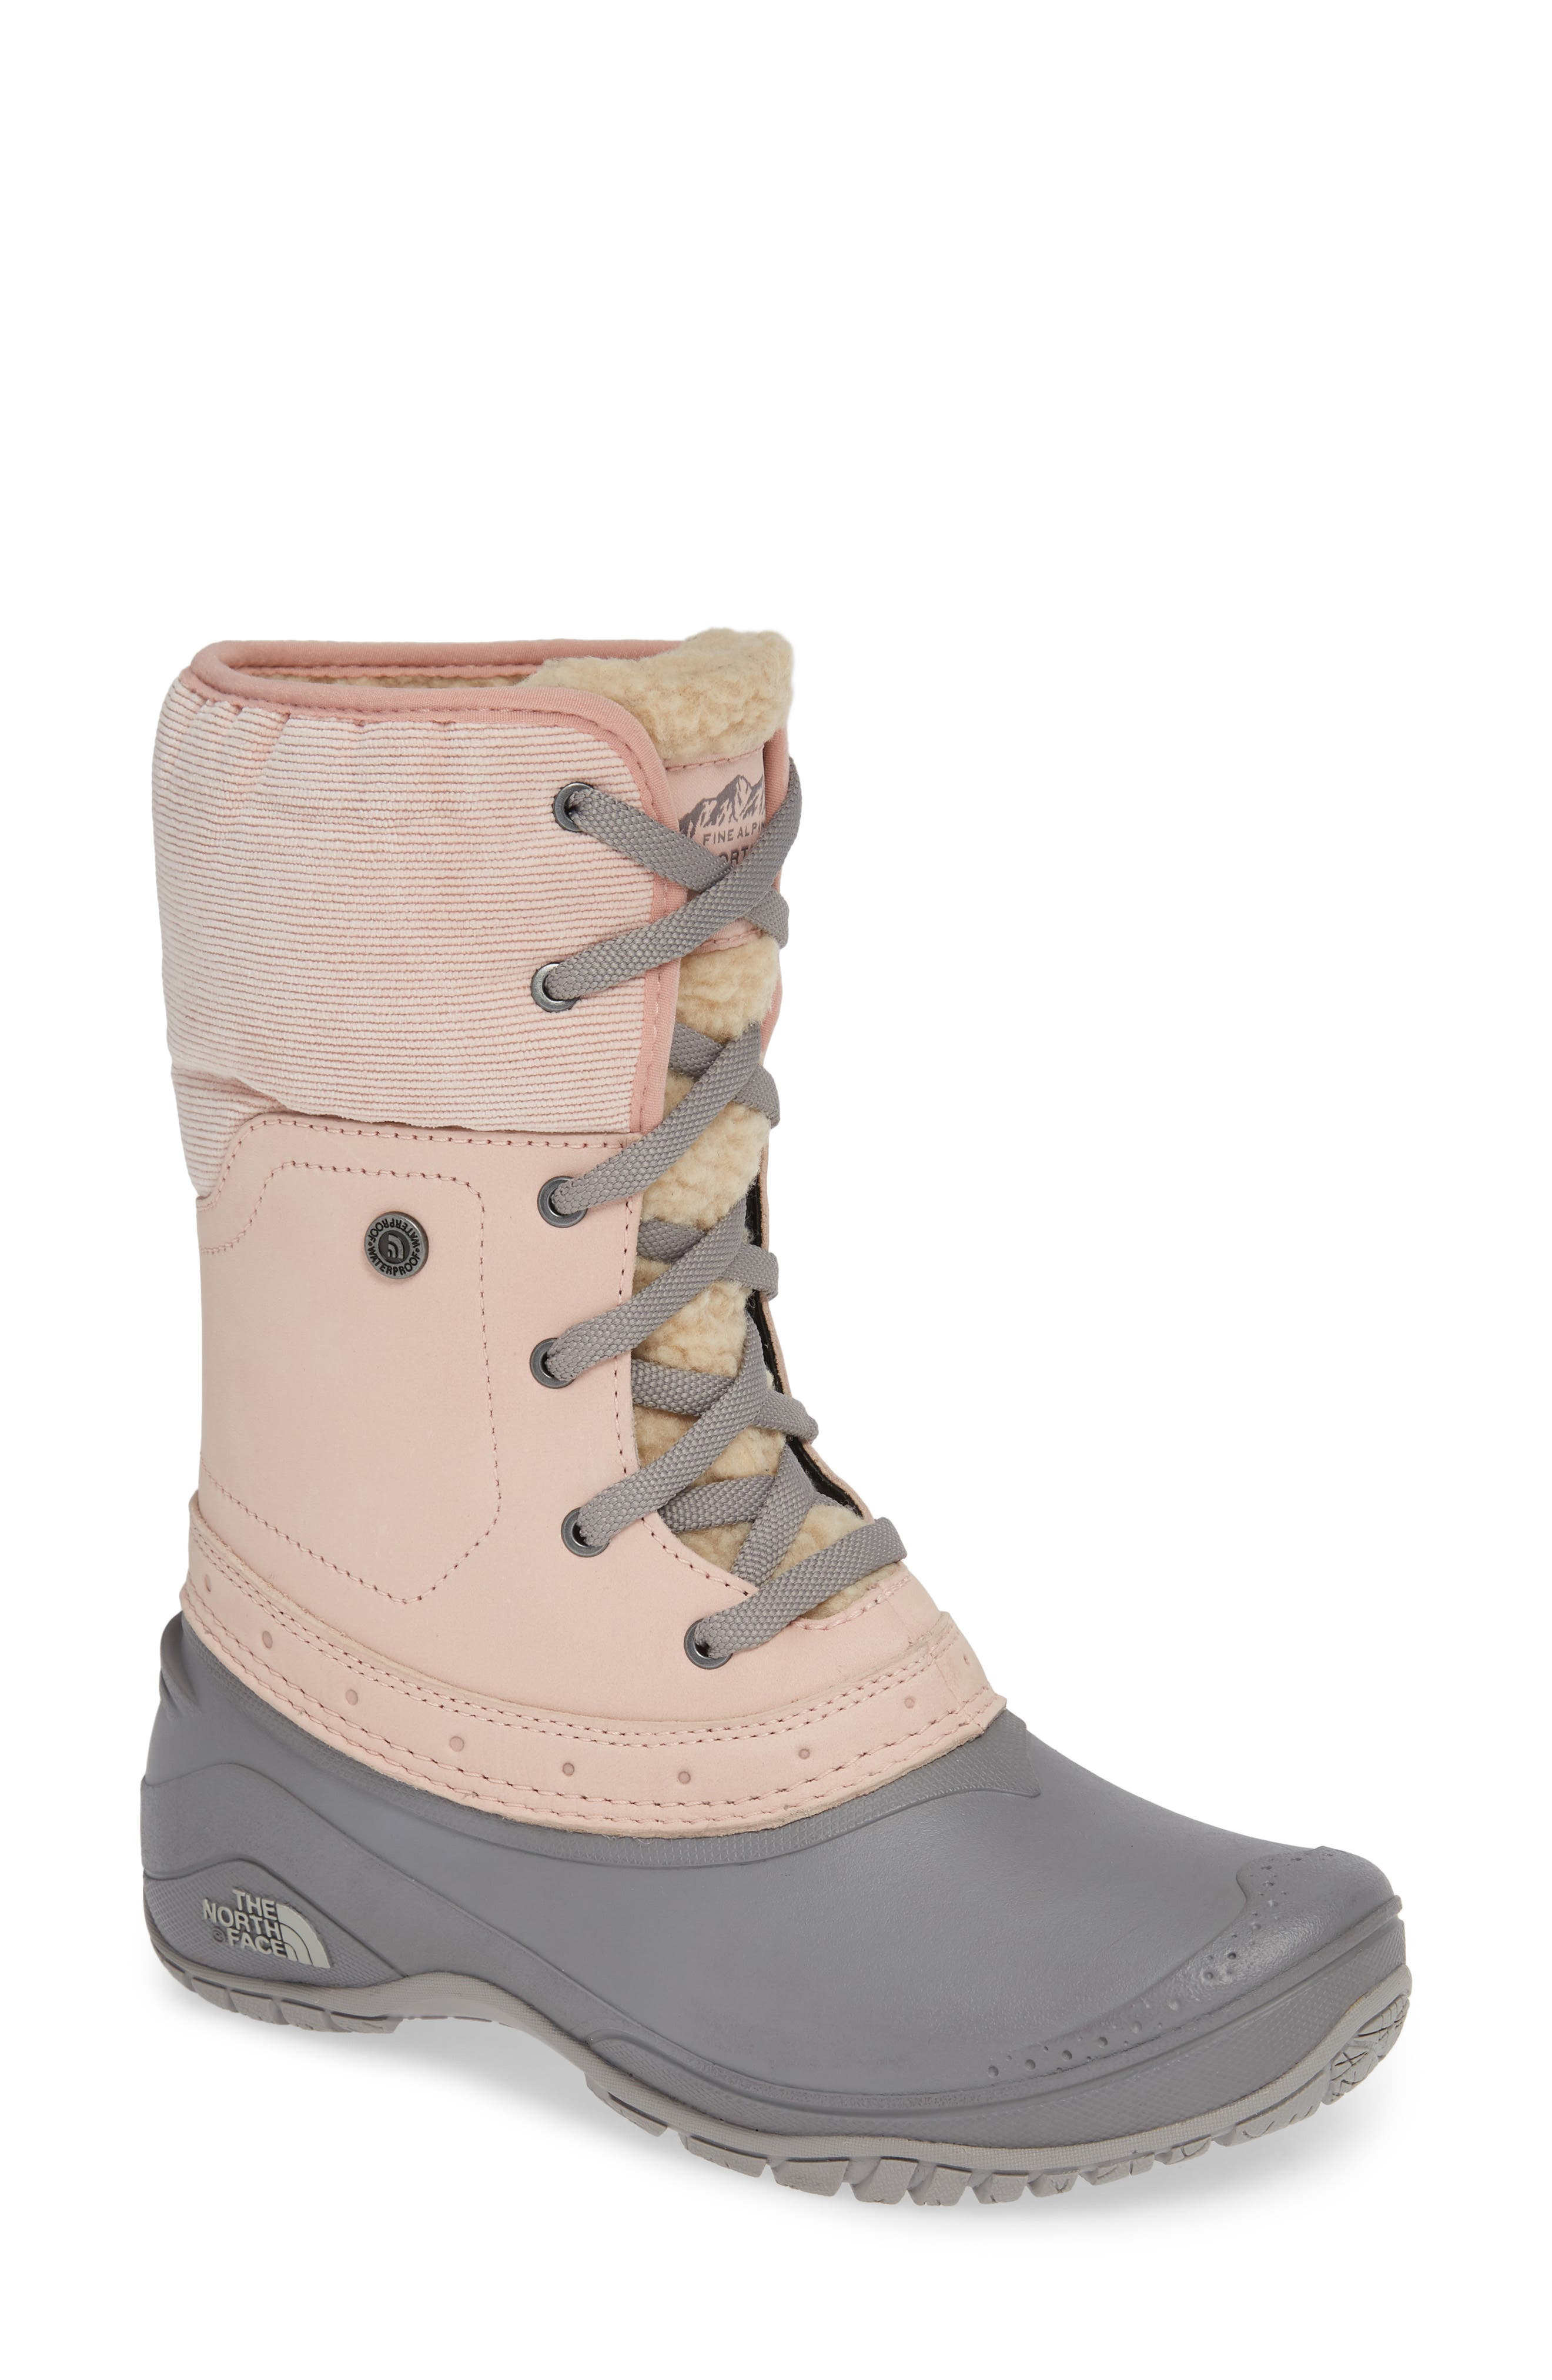 Shellista Roll Cuff Waterproof Insulated Winter Boot,                             Main thumbnail 1, color,                             MISTY ROSE/ Q-SILVER GREY